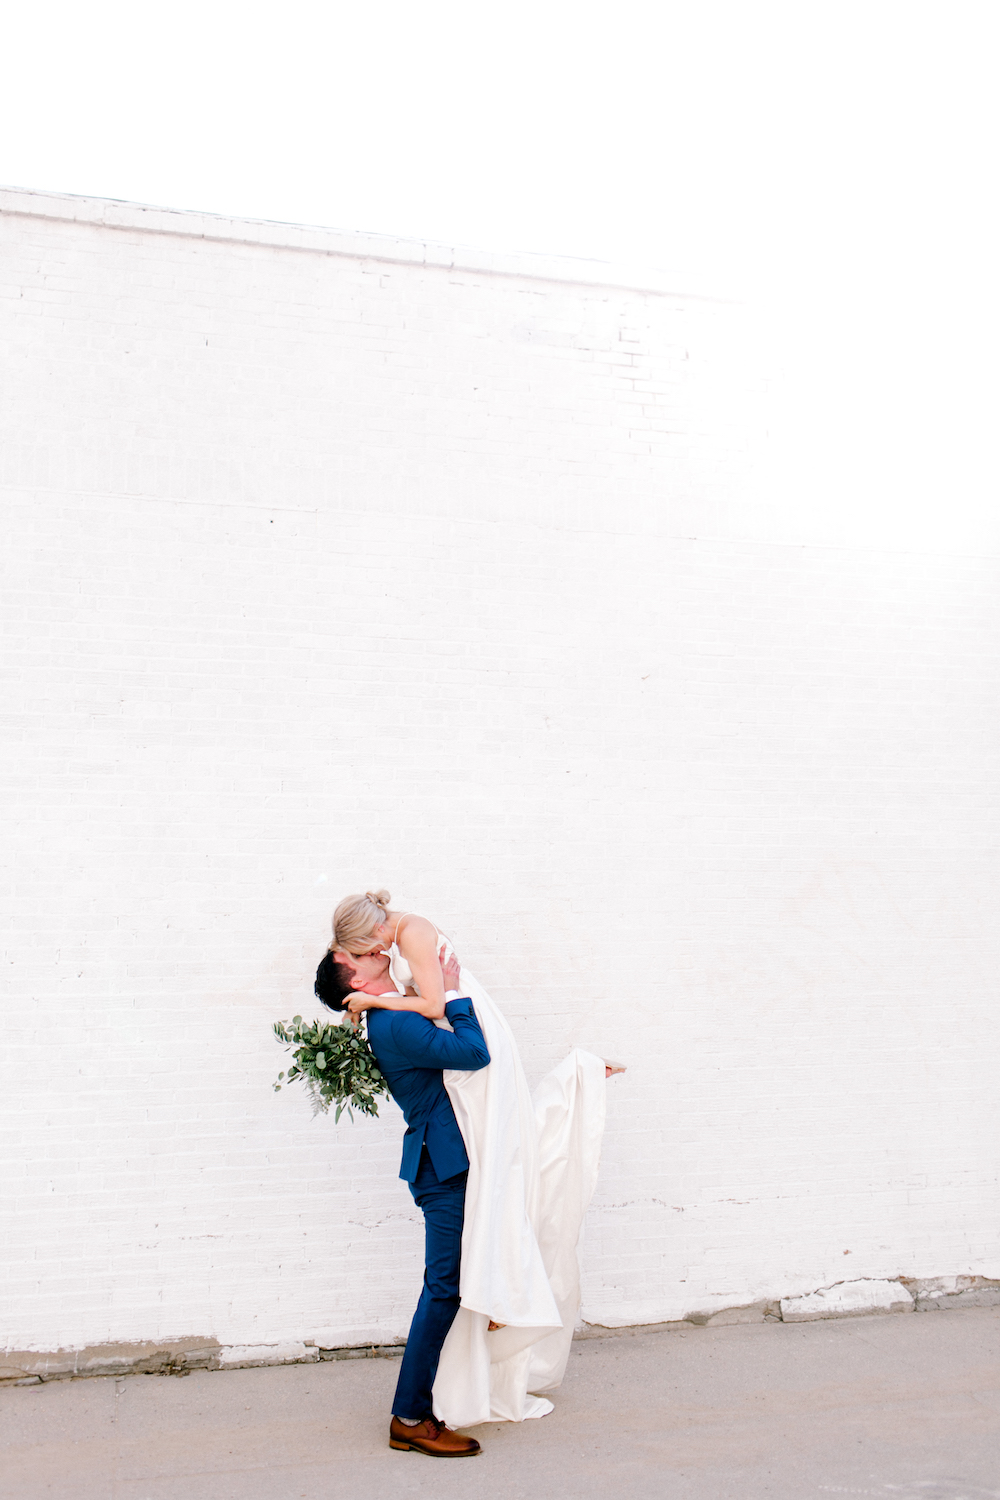 Wedding Planning in Winnipeg - Winnipeg's Best Wedding Florist